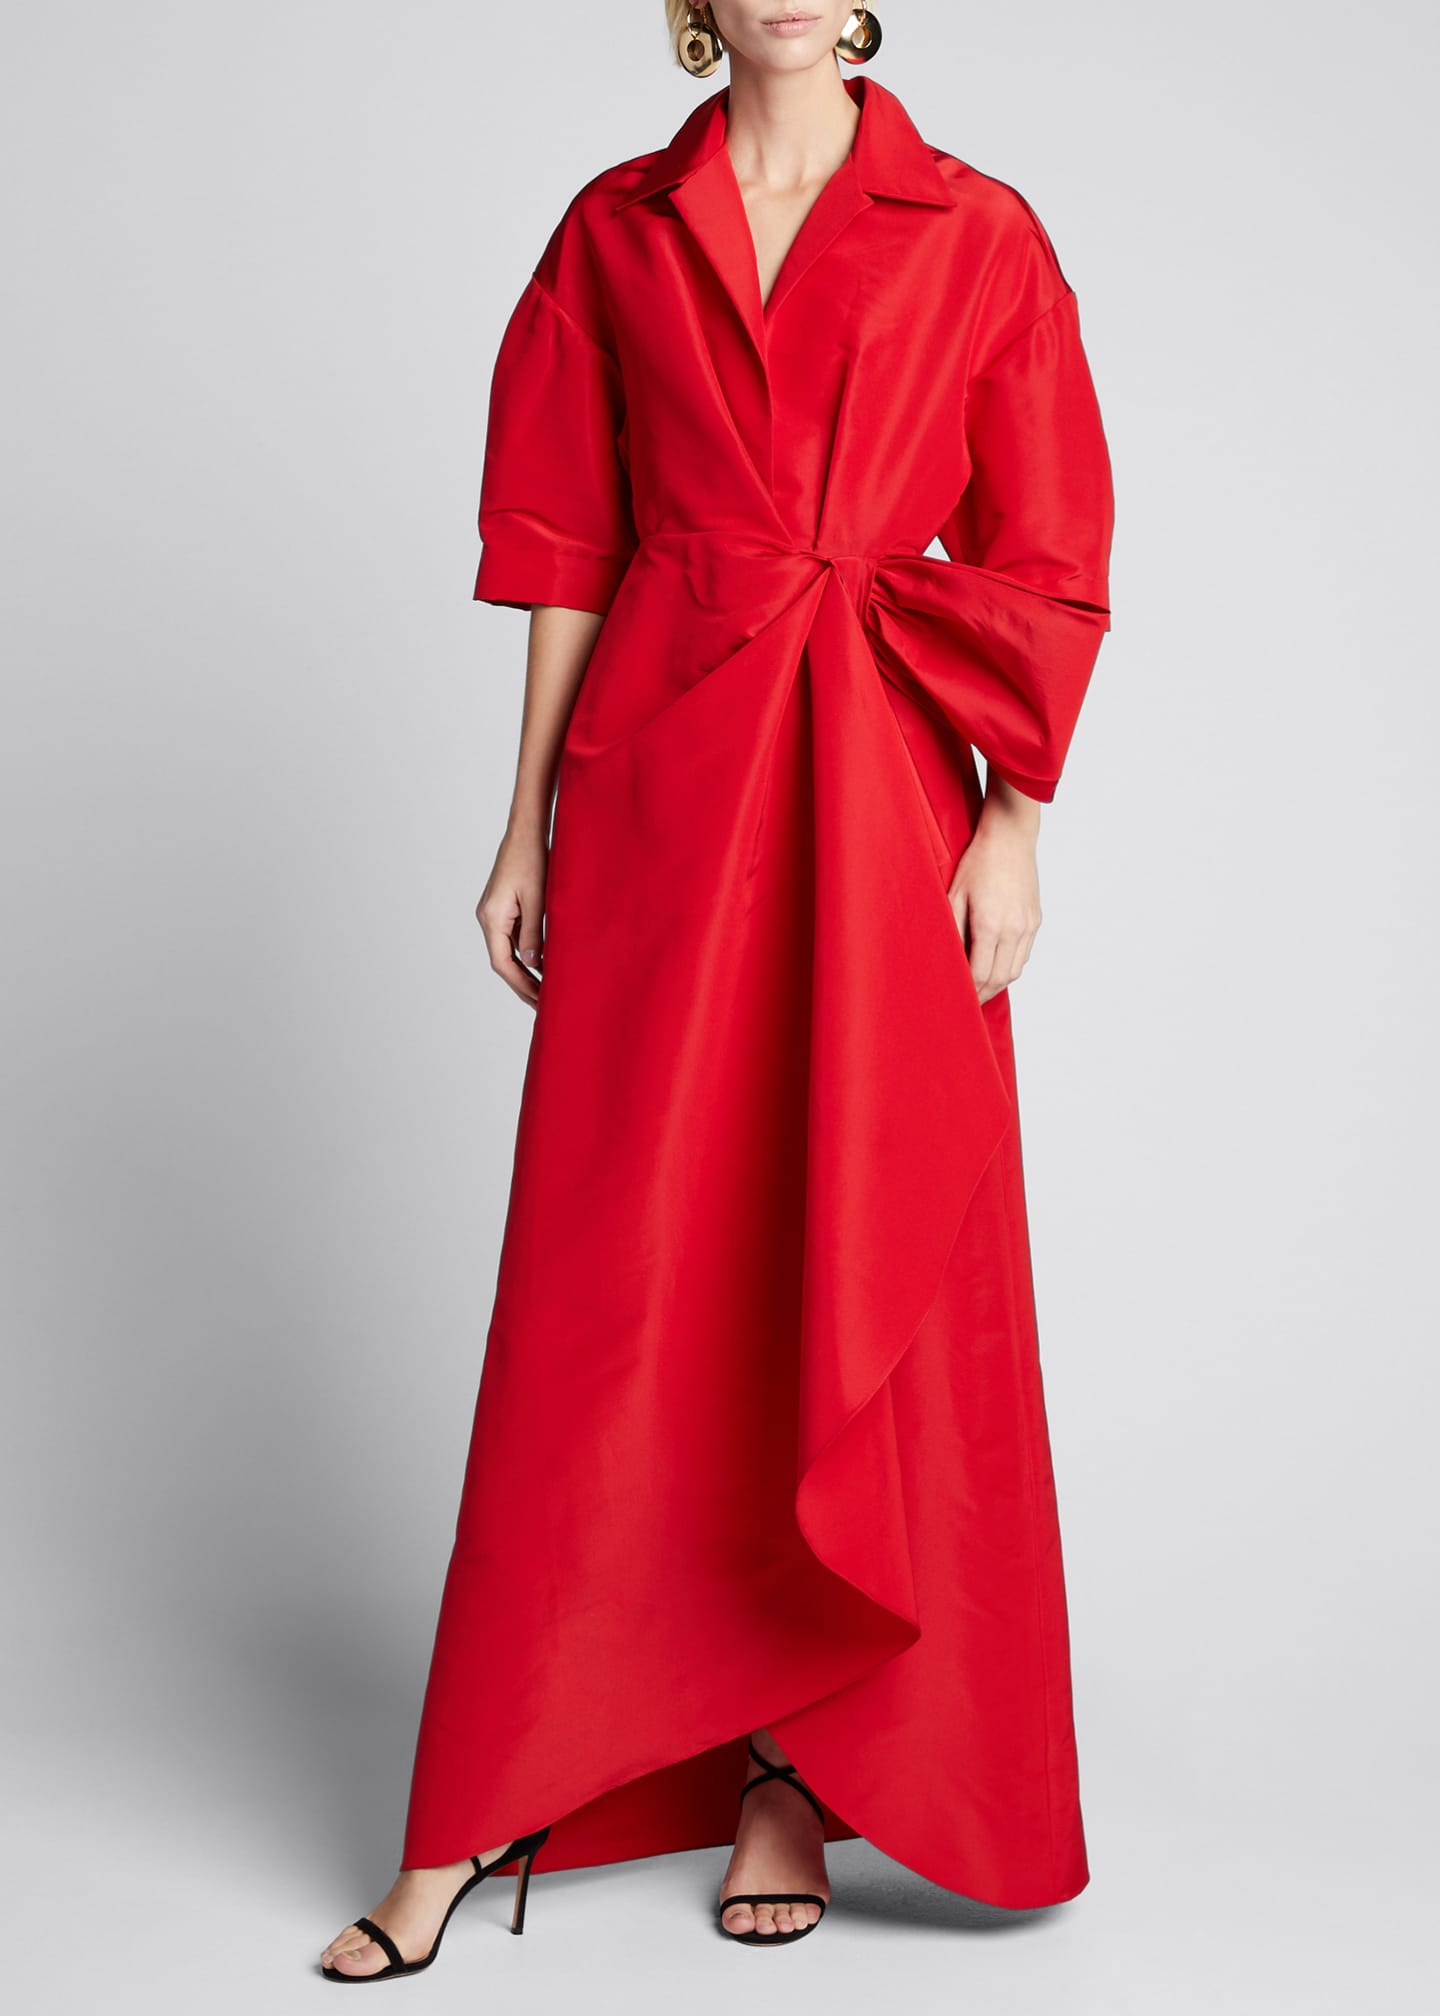 Carolina Herrera Collared 1/2-Sleeve Gown w/ Fan Detail